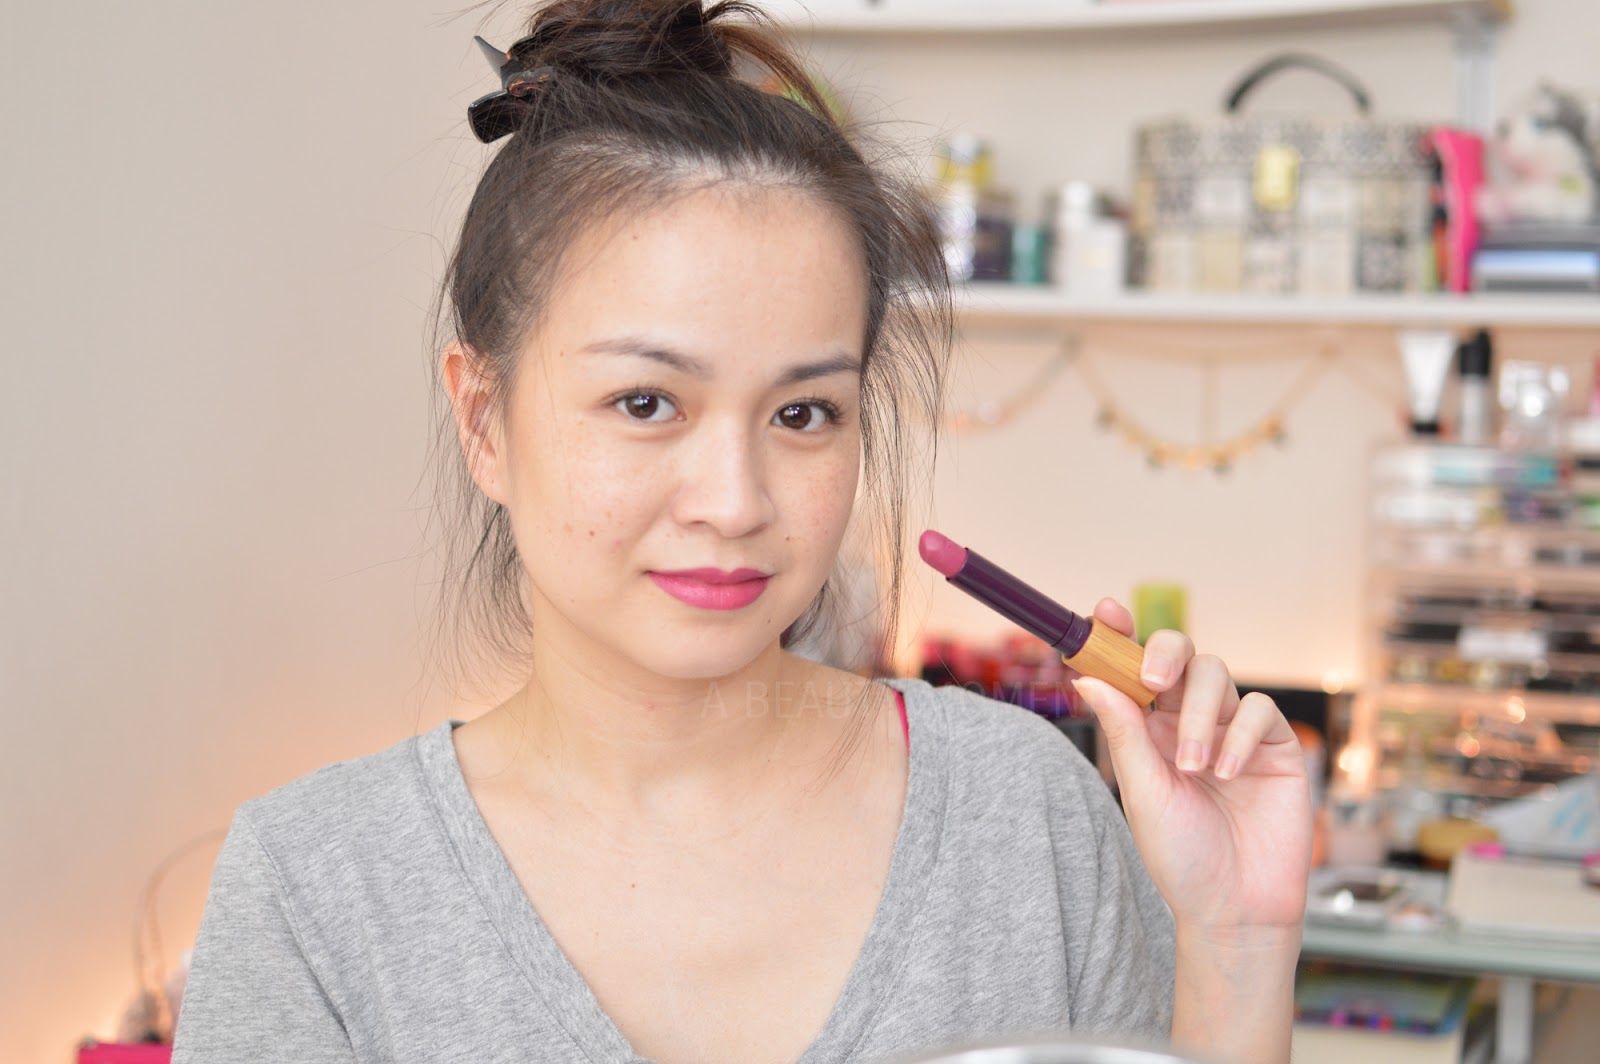 A Beauty Moment: TARTE GLAMAZON PURE PERFORMANCE 12 HOUR LIPSTICK ...